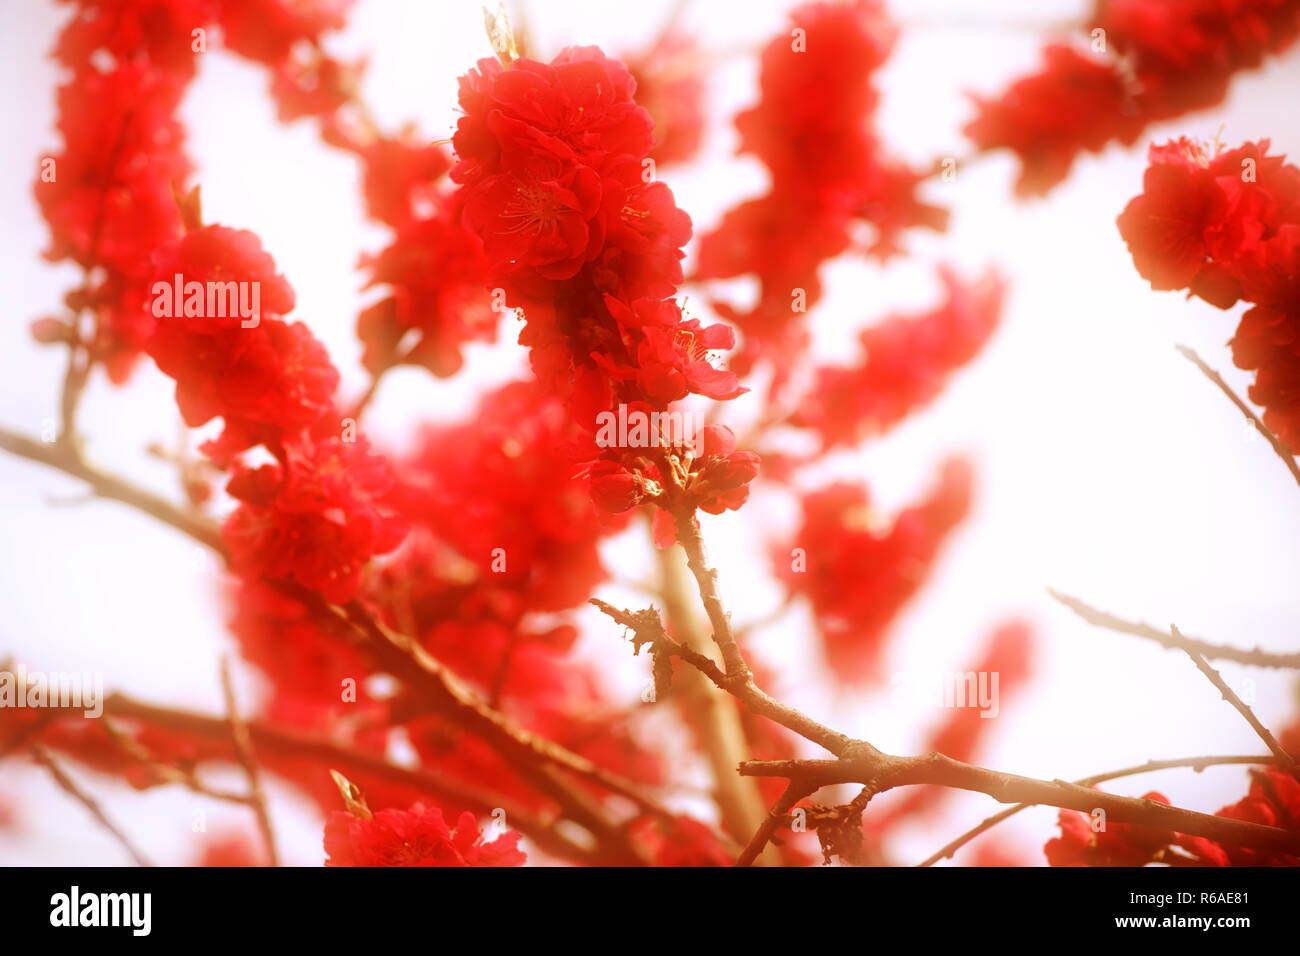 Red Peach Blossoms Stock Photo